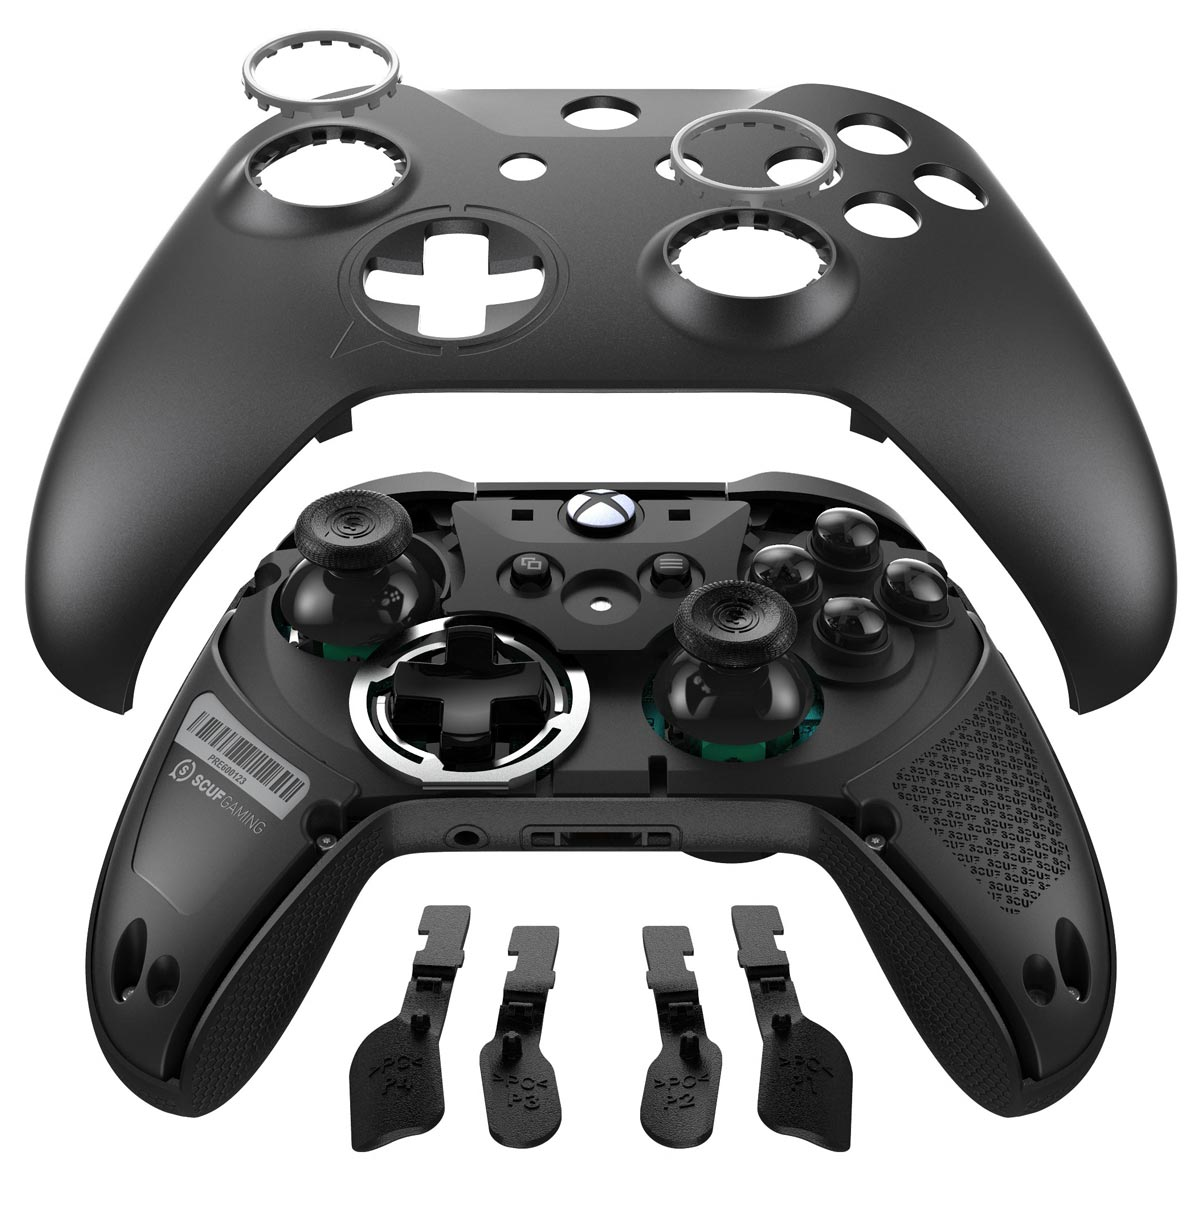 The SCUF Prestige Xbox One controller can be customized for each gamer's preference.